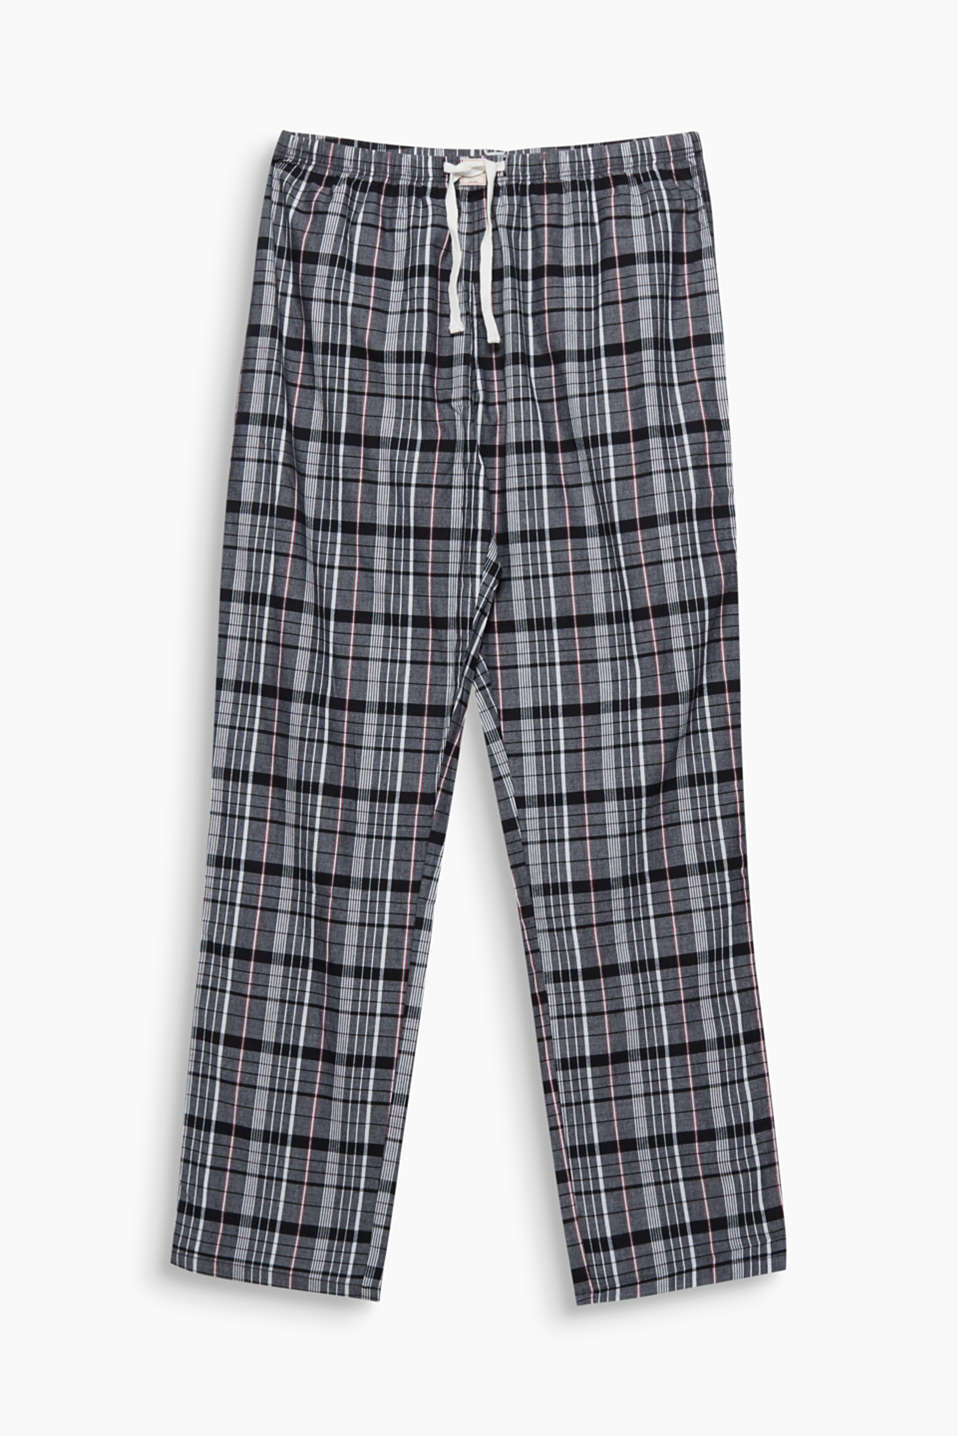 These pyjama bottoms are a classic piece with modern check and are super comfy thanks to the smooth cotton fabric and casual fit!